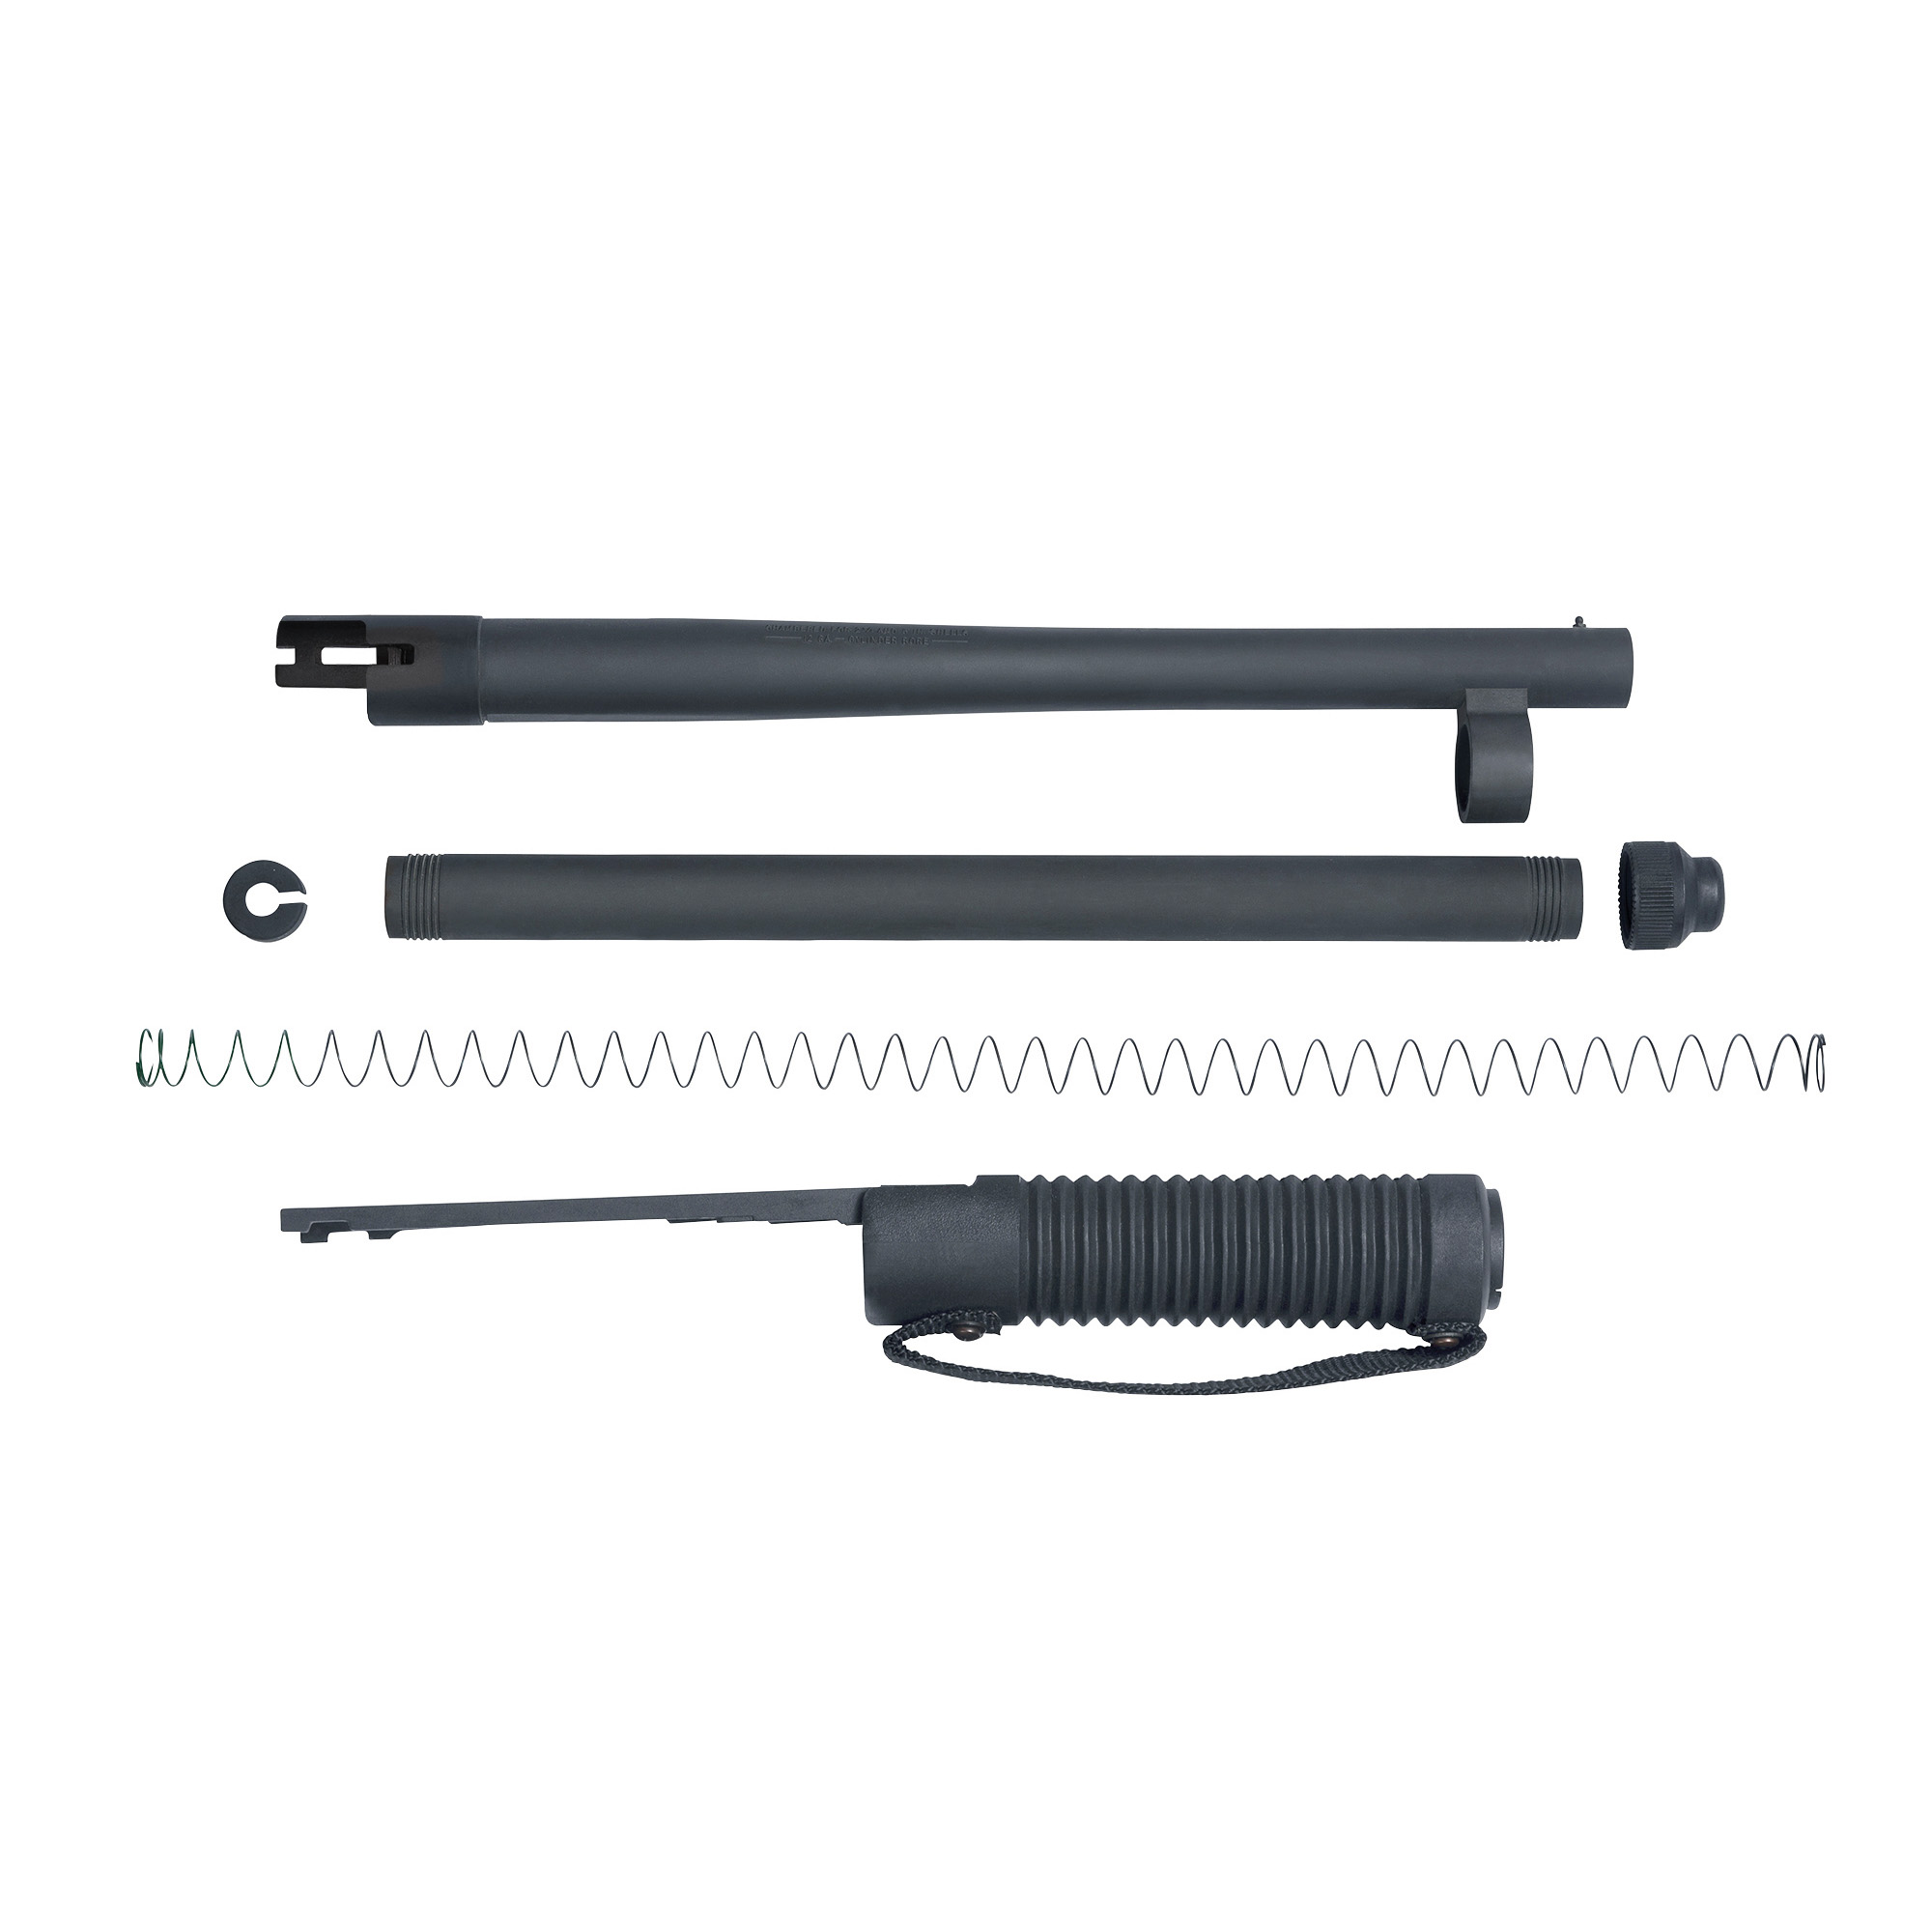 "Mossberg 514 Kit, 12ga 3"", Kit Includes 14"" Heavy Wall Barrel W/bead S..."